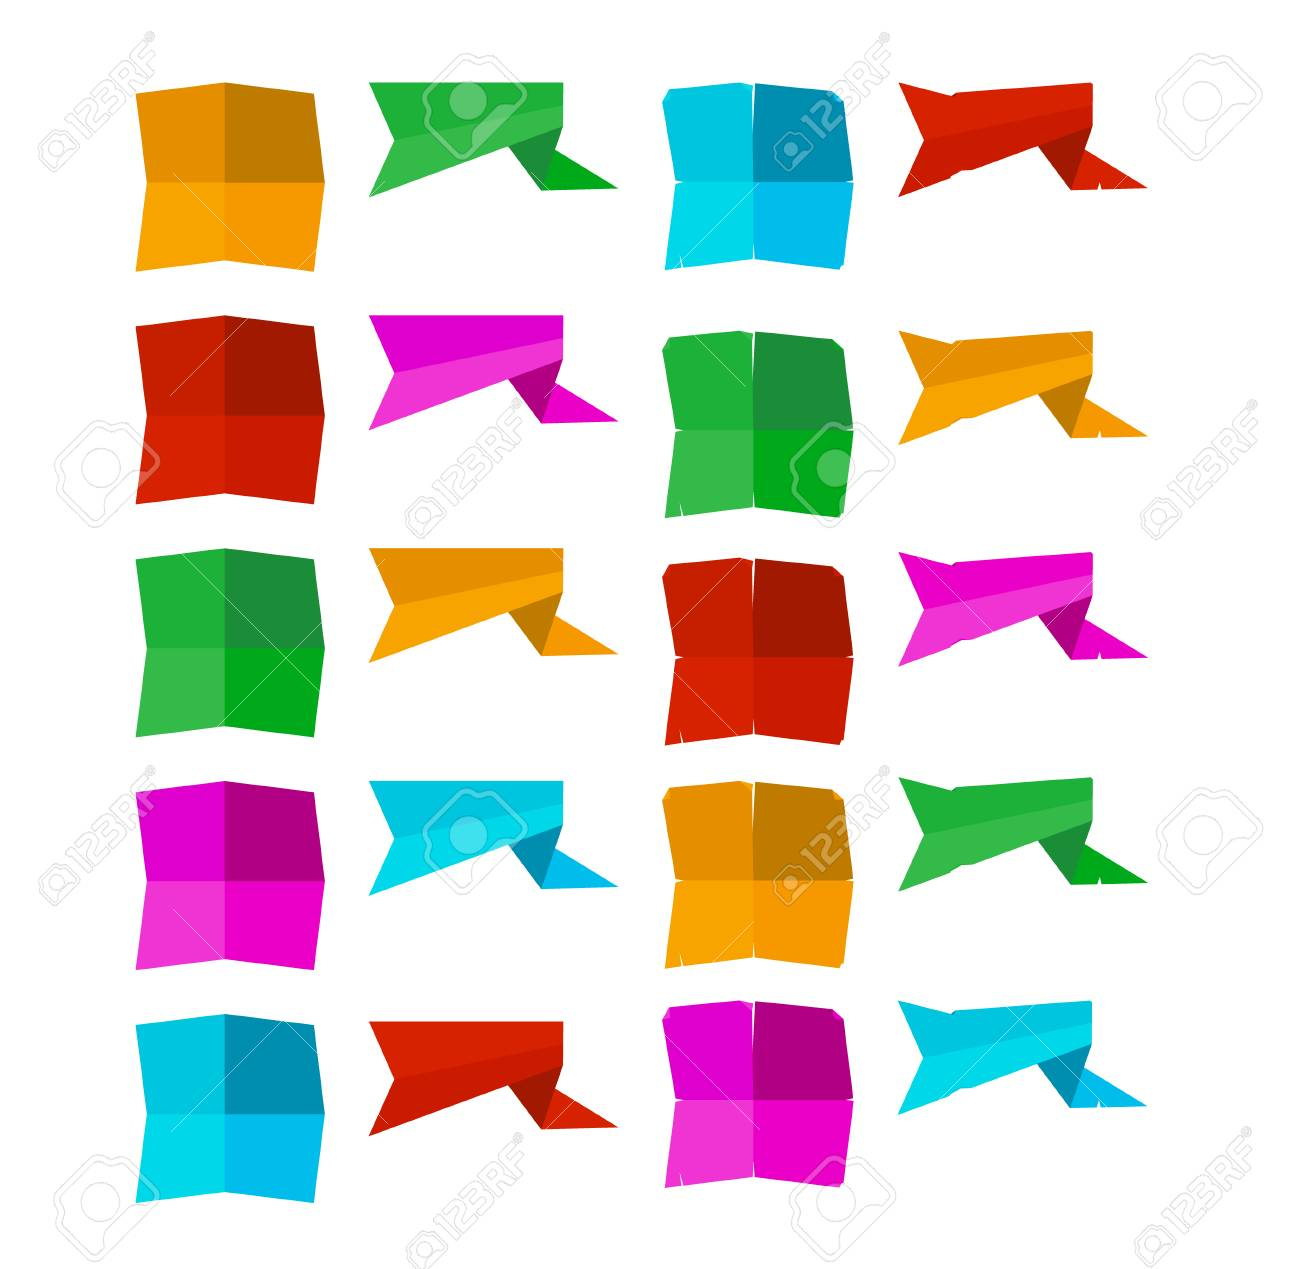 set of blank banner shapes in different colors royalty free cliparts